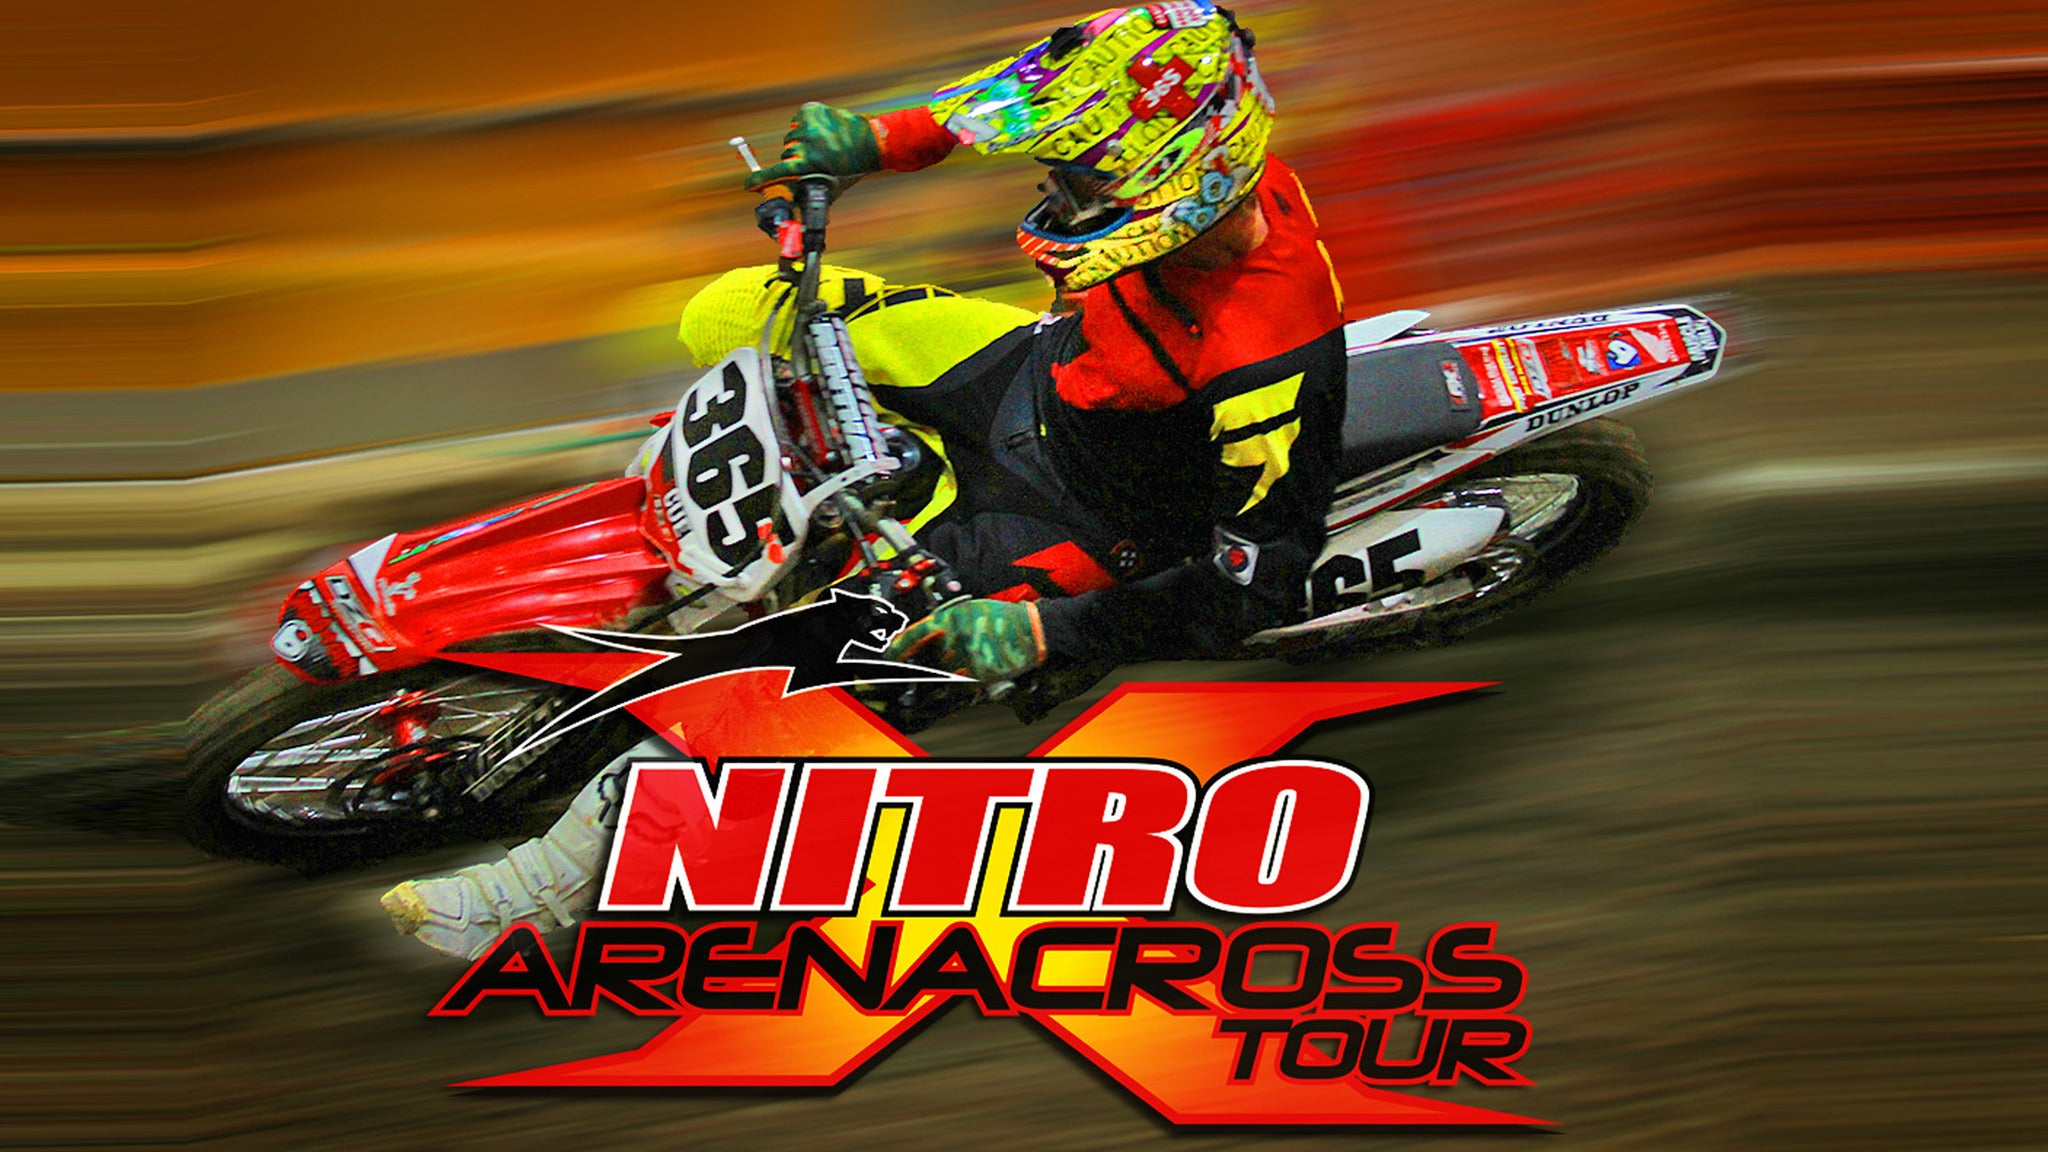 Artic Cat Nitro Arenacross Tour at Hartman Arena